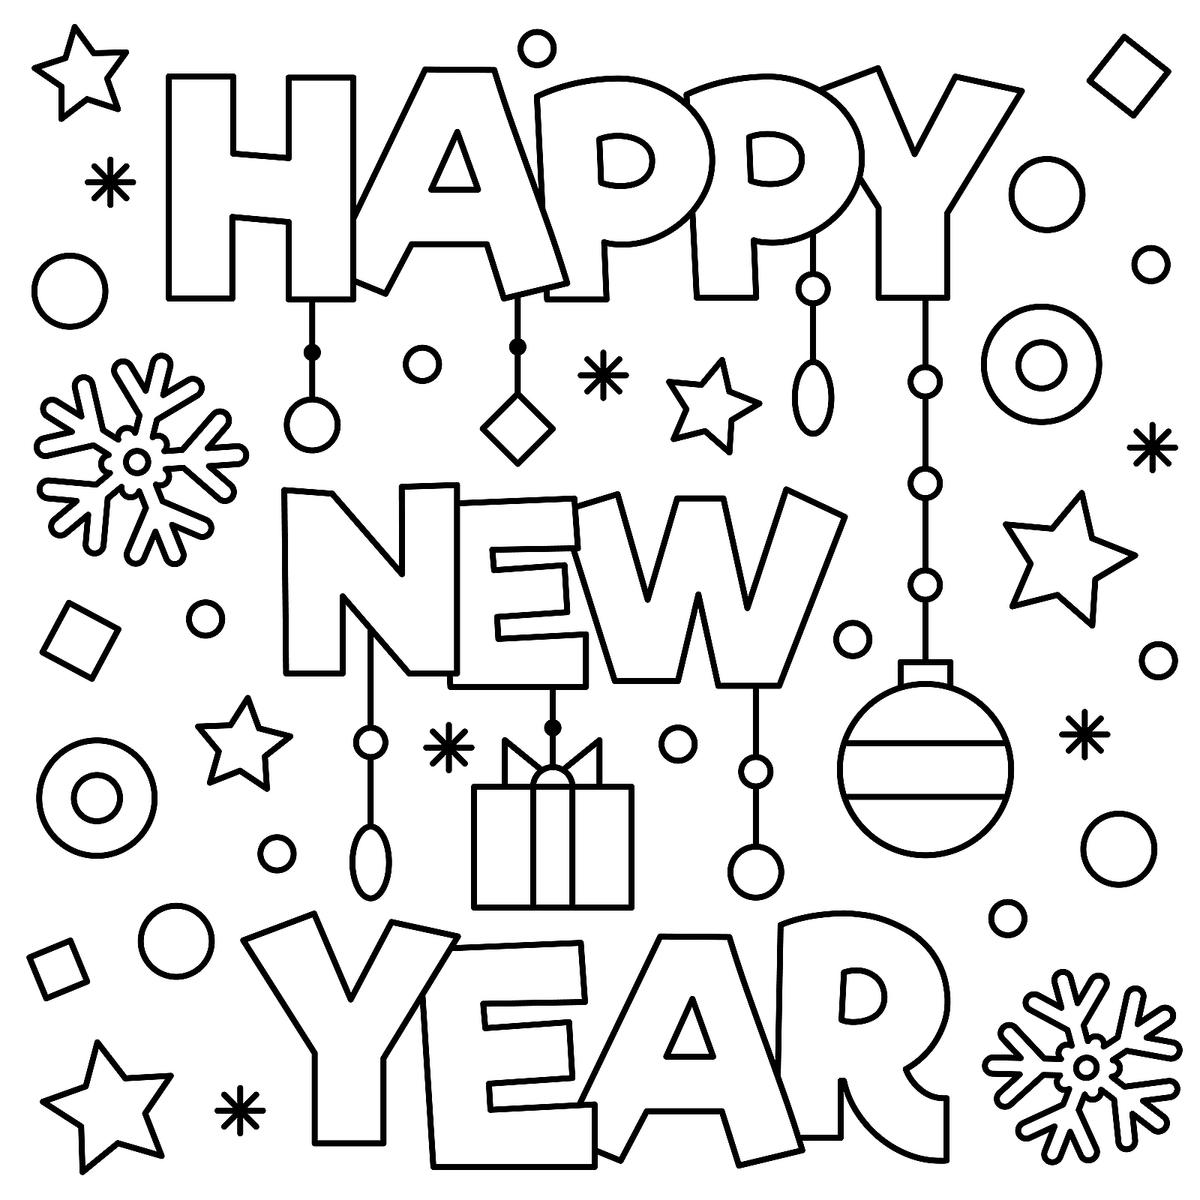 January Coloring Pages New Year & January Coloring Pages Printable Fun To Help Kids